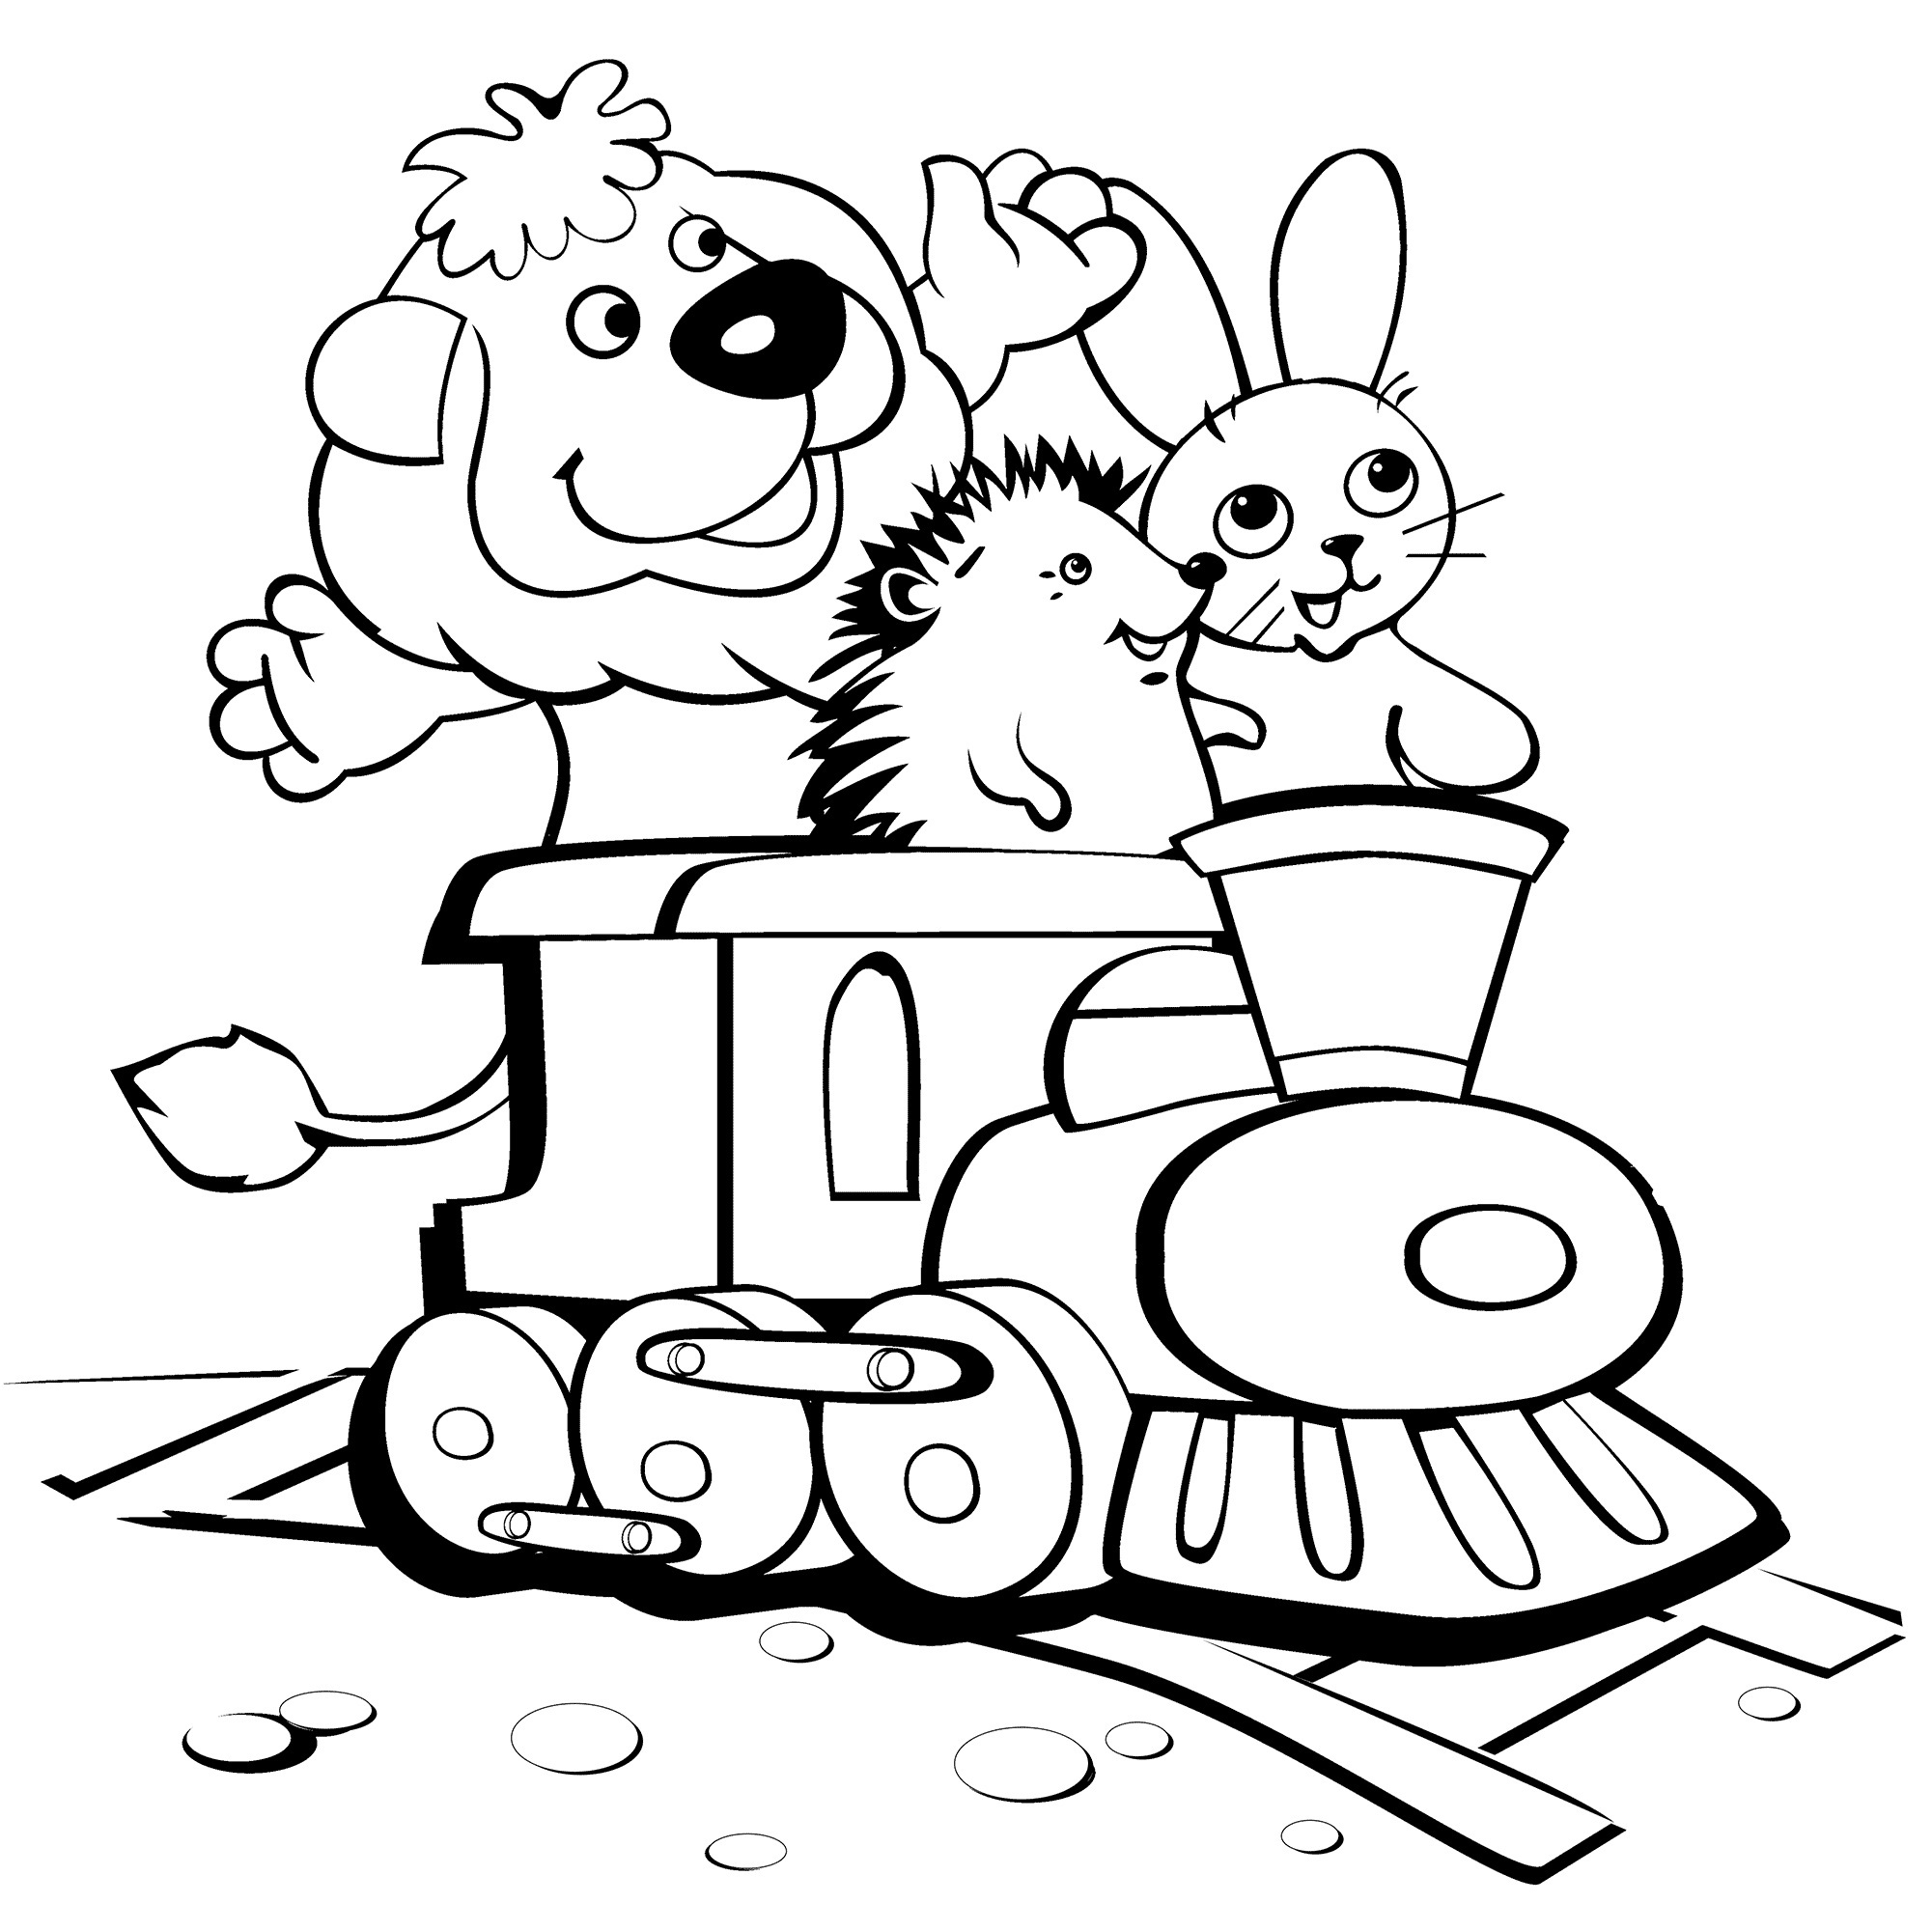 Lion, Hedgehog and Rabbit on the Train Coloring Page